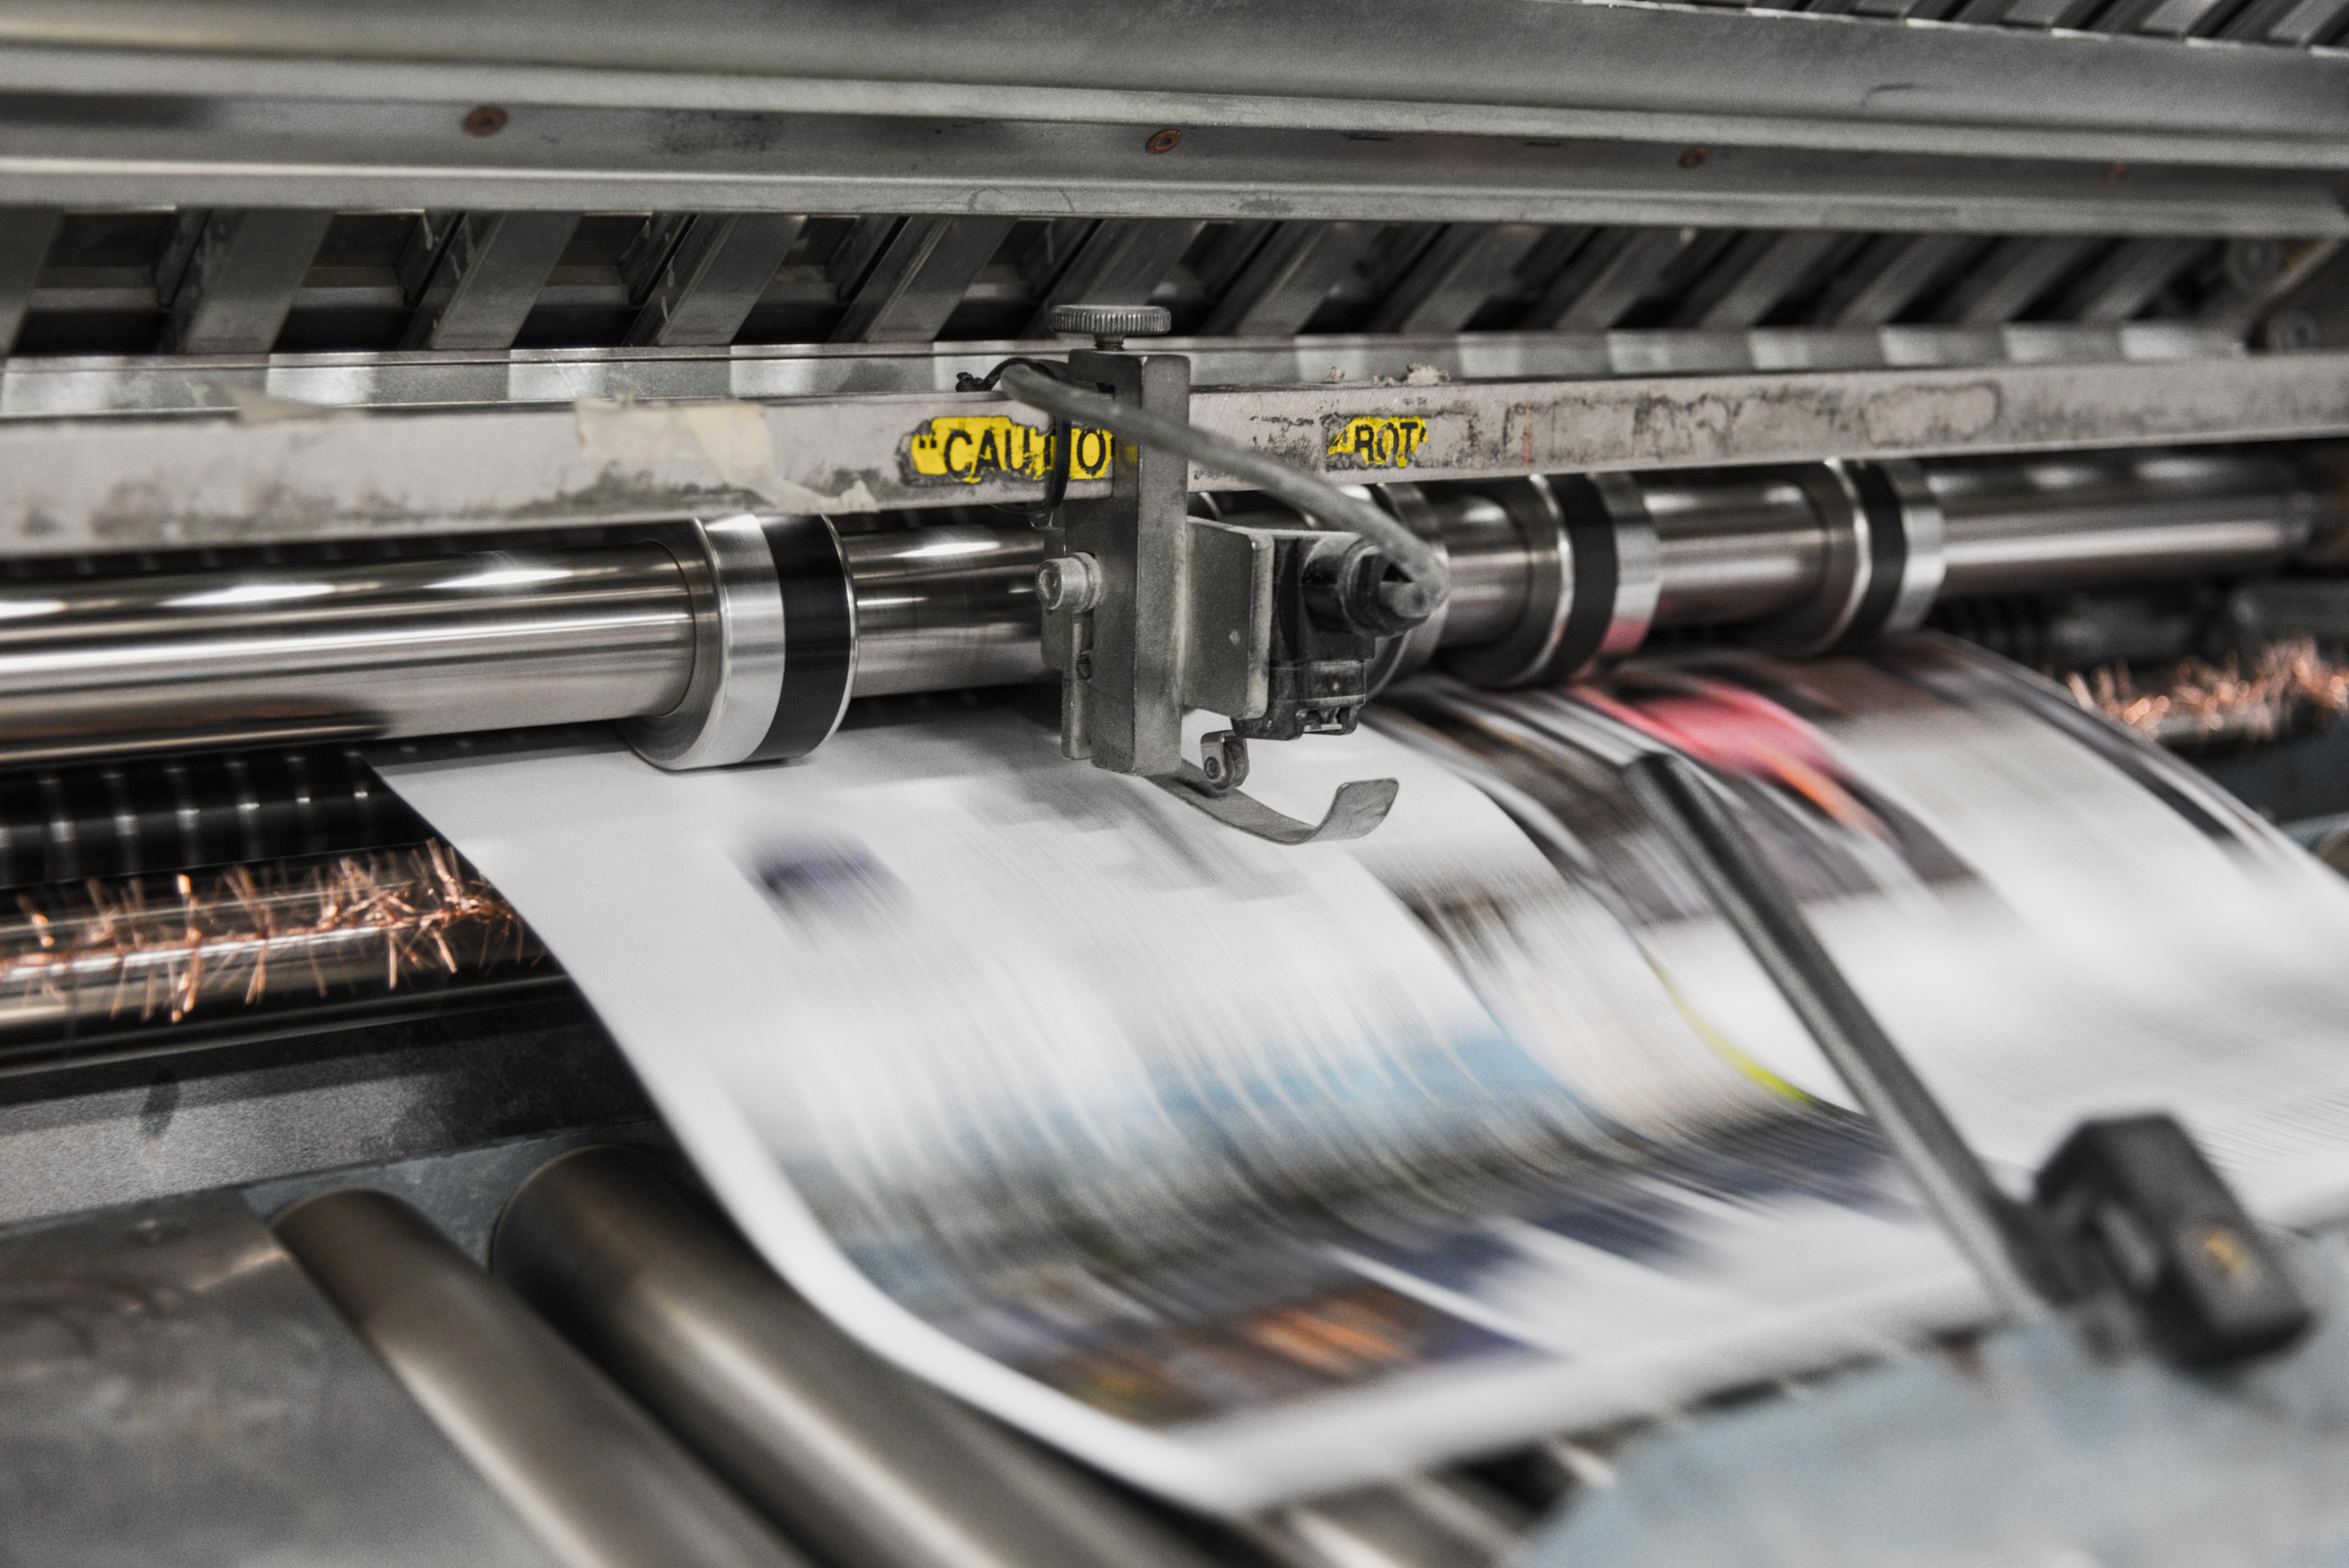 A newspaper coming out of a printing press.